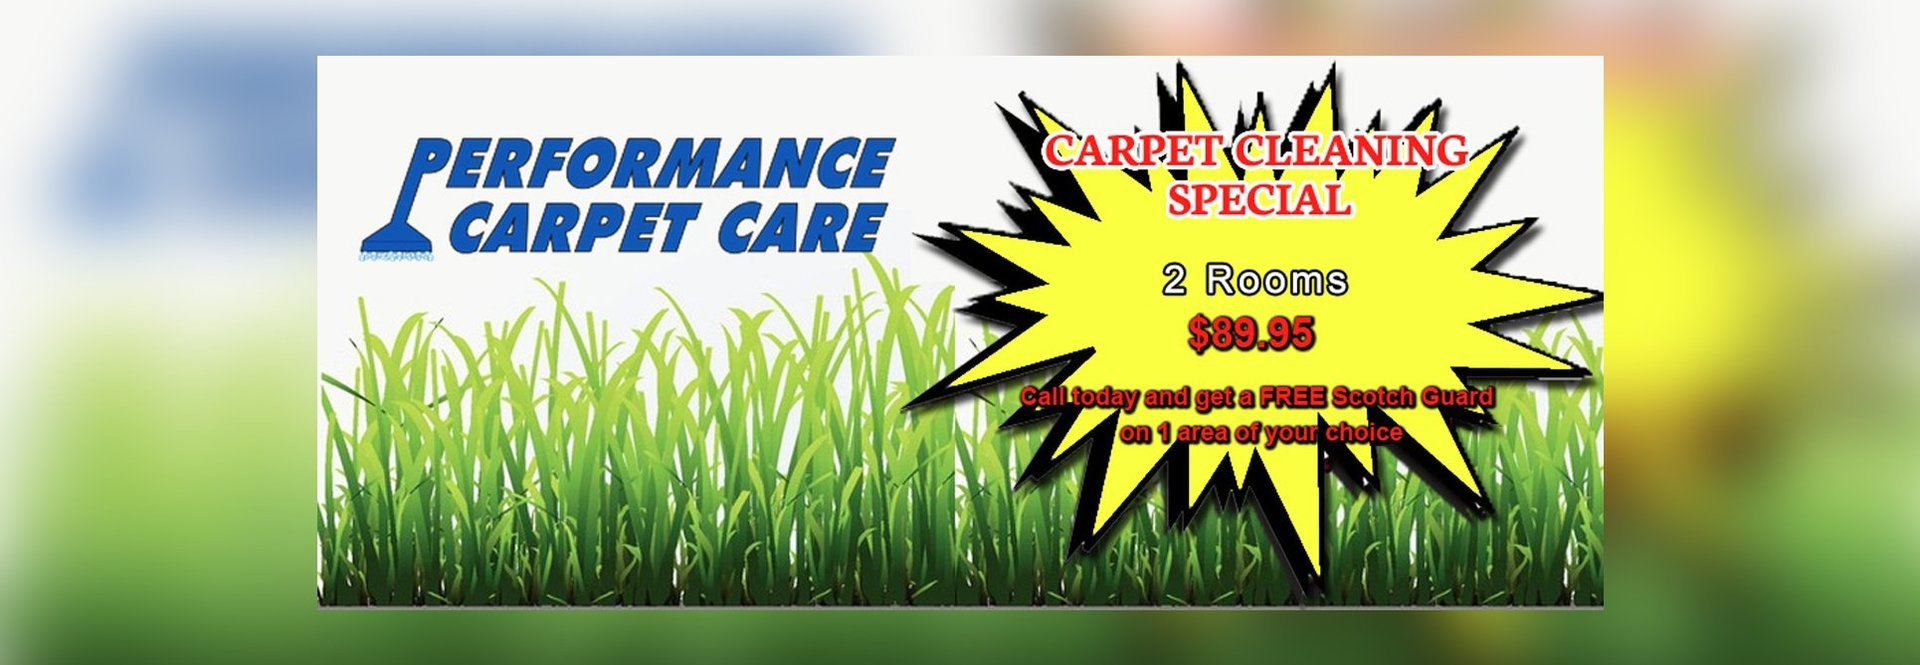 Offer for Carpet Cleaning